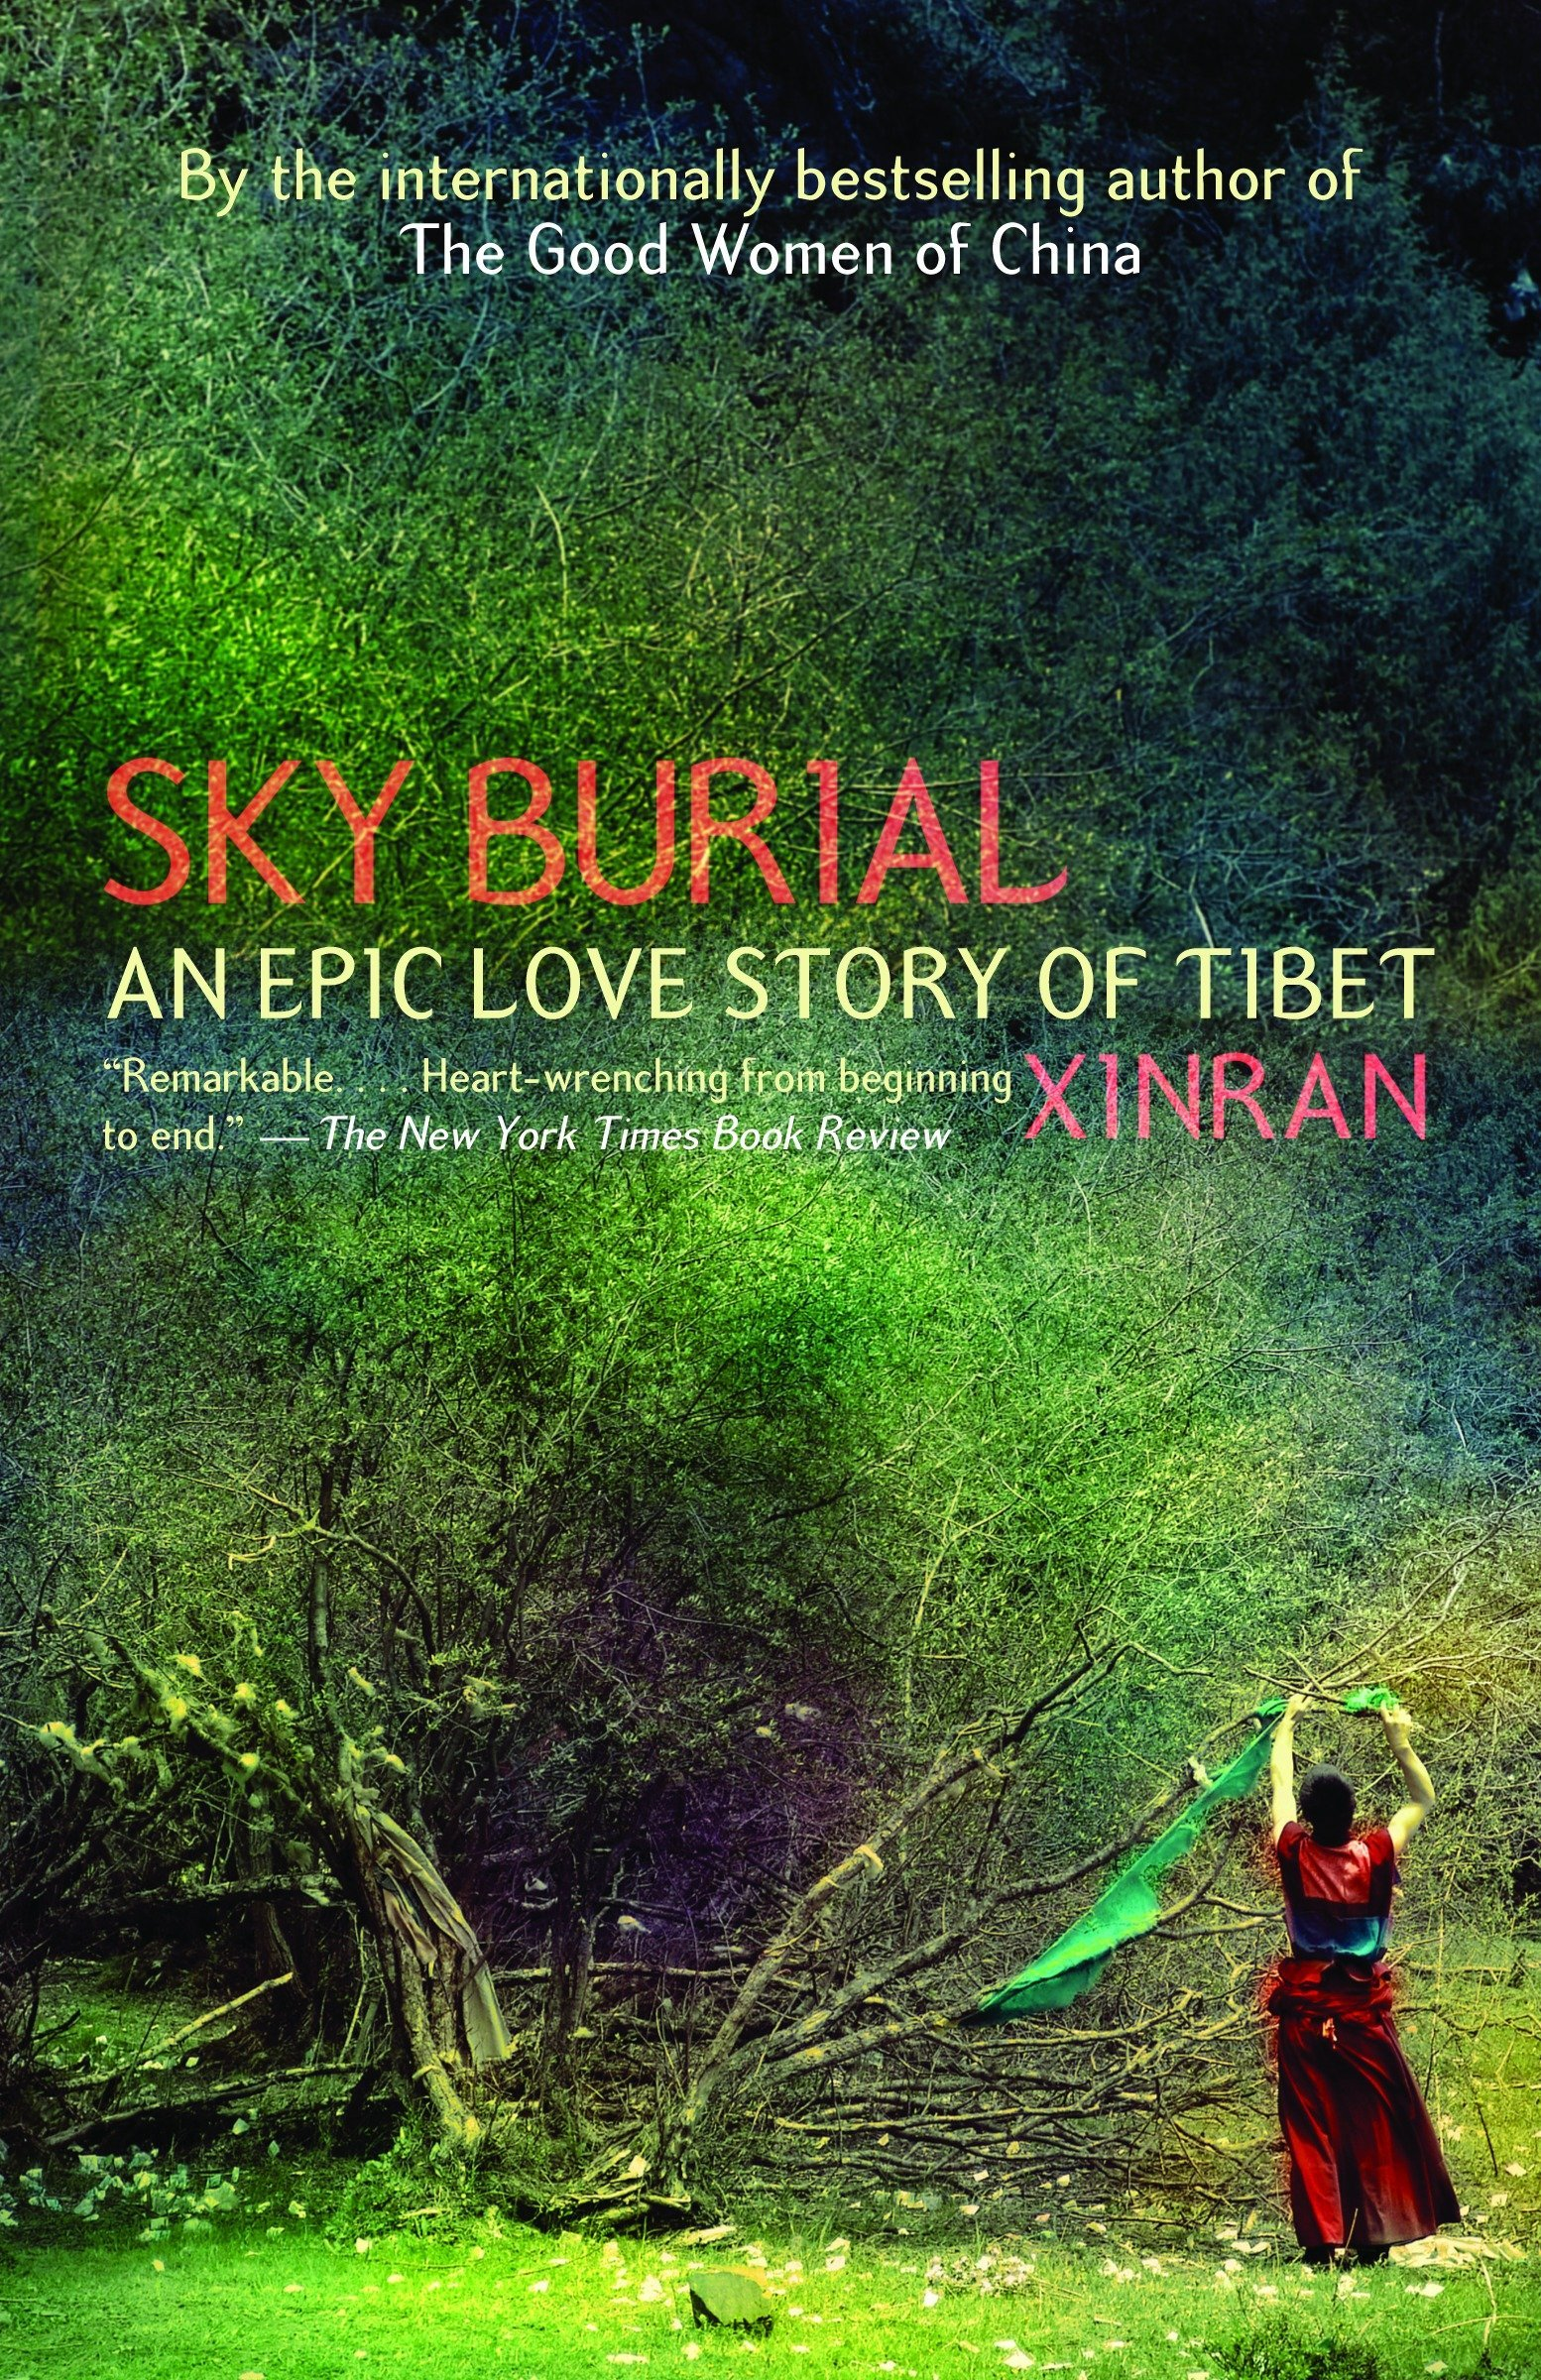 Sky Burial: An Epic Love Story of Tibet pdf